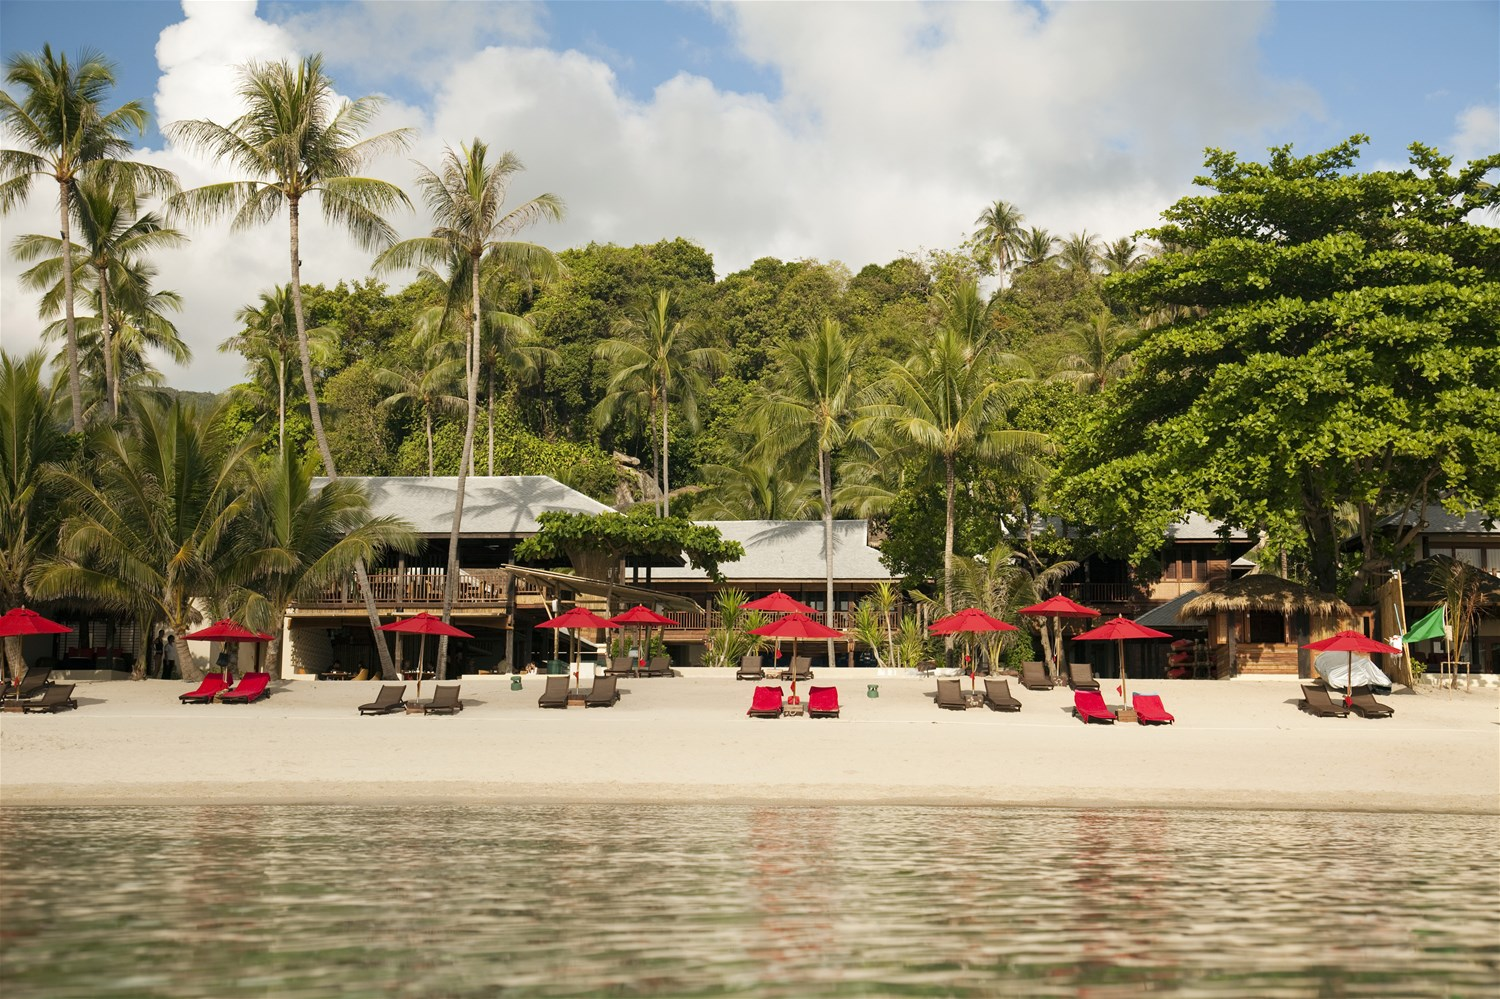 how to get from koh samui to koh phangan